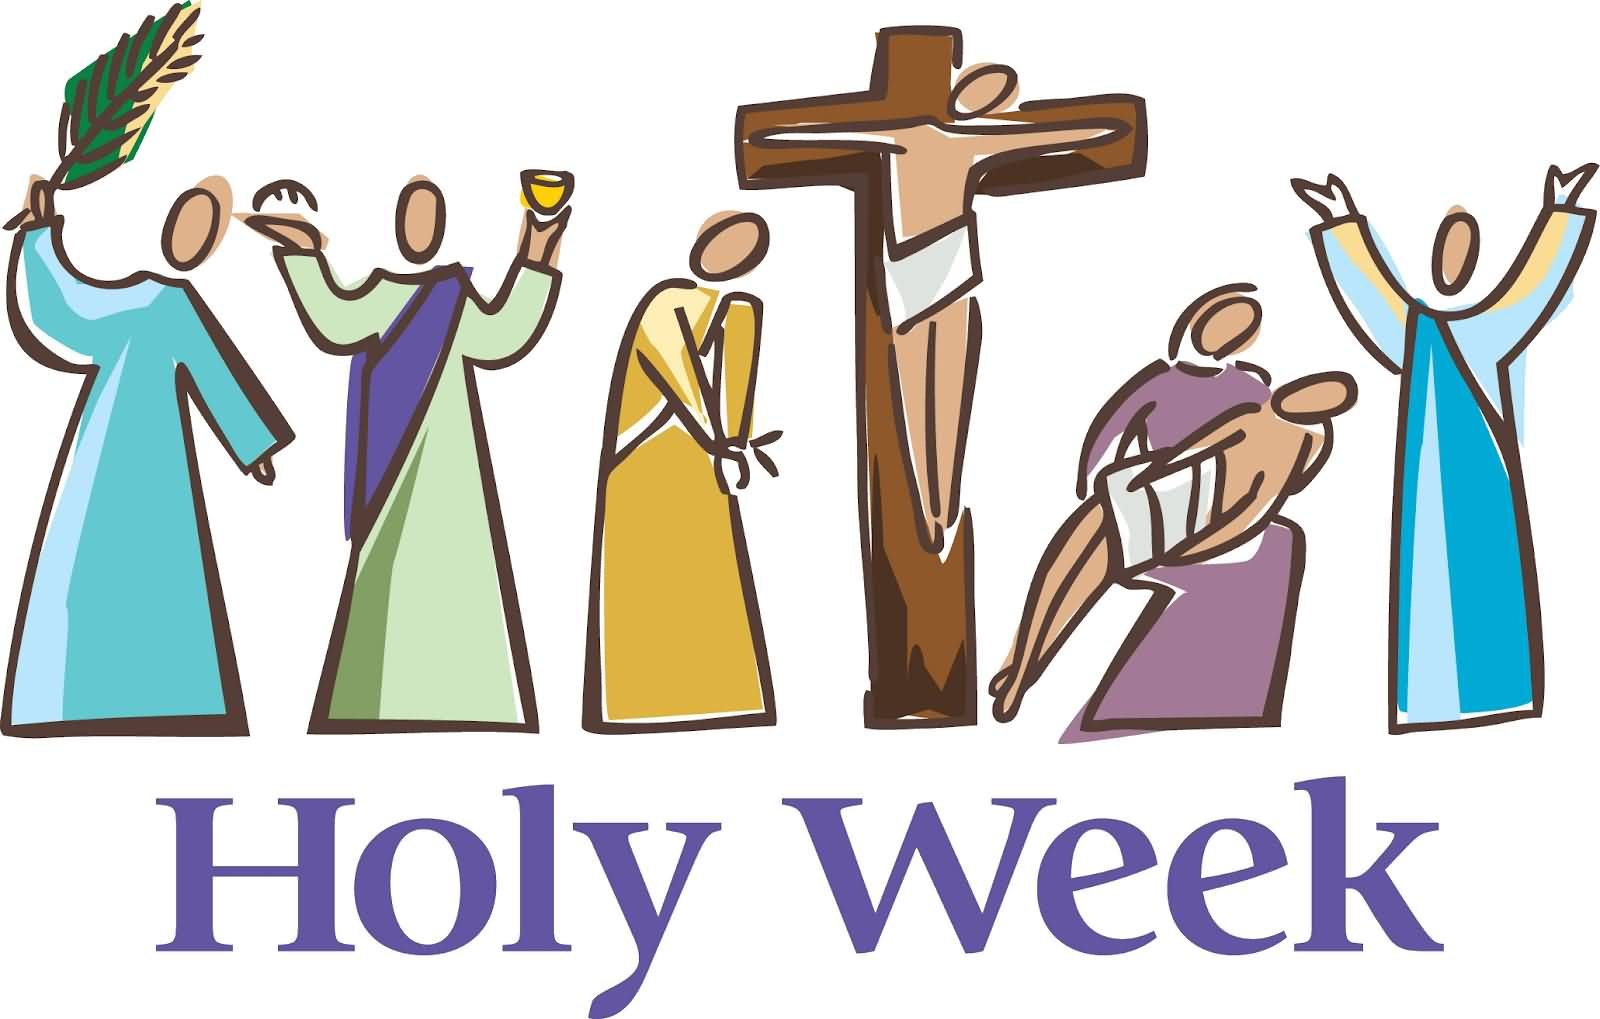 Holy week clipart colour. Most adorable greeting